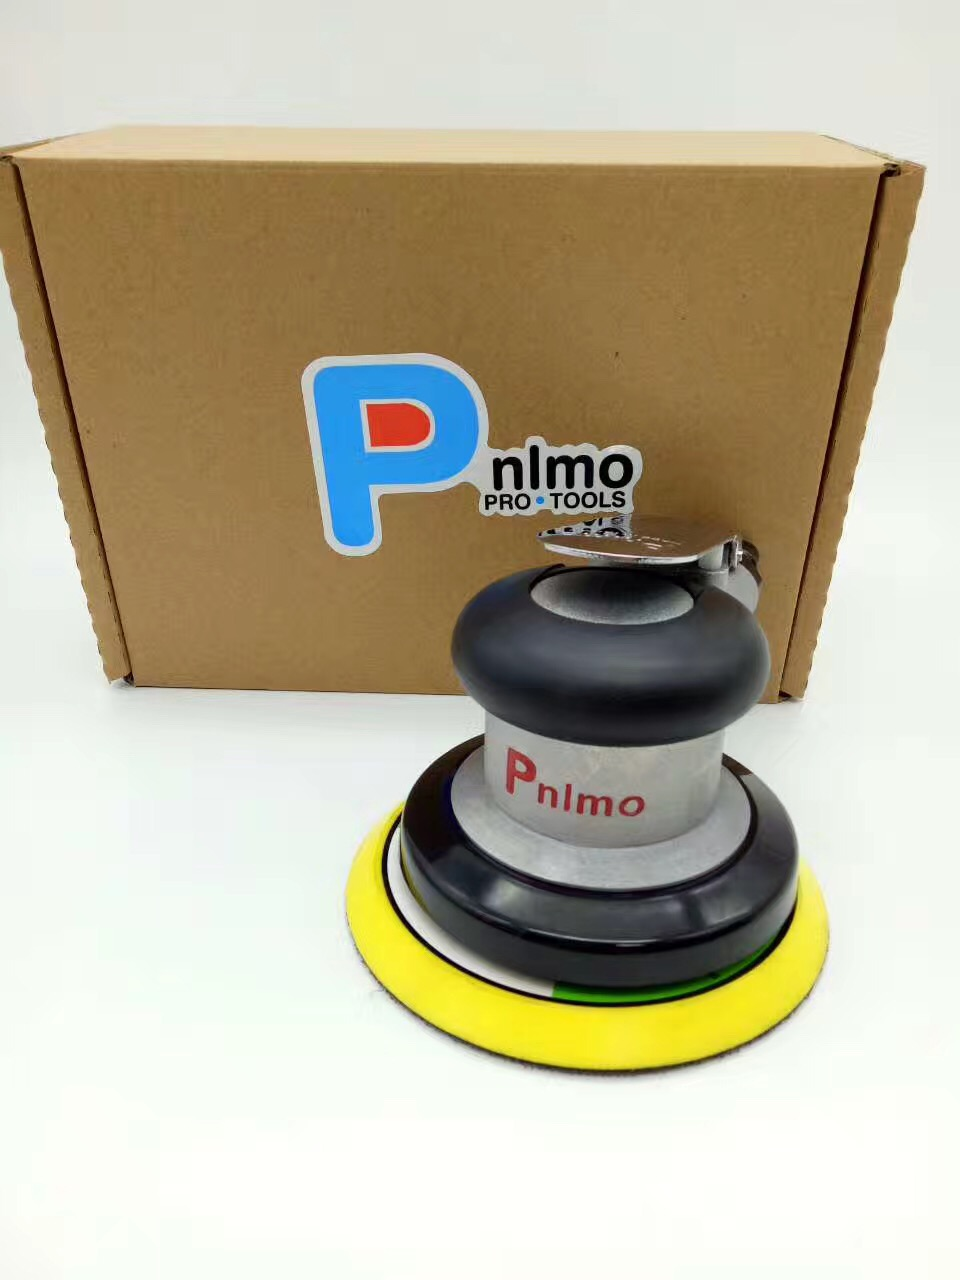 Pneumatic Sanders TAIWAN Pnomo Air Tools Palm Random Orbital Sander Polisher 5 Inch Circle Round Pad OSN-50HE VE 125mm hilda 5inches random orbital air for palm sander